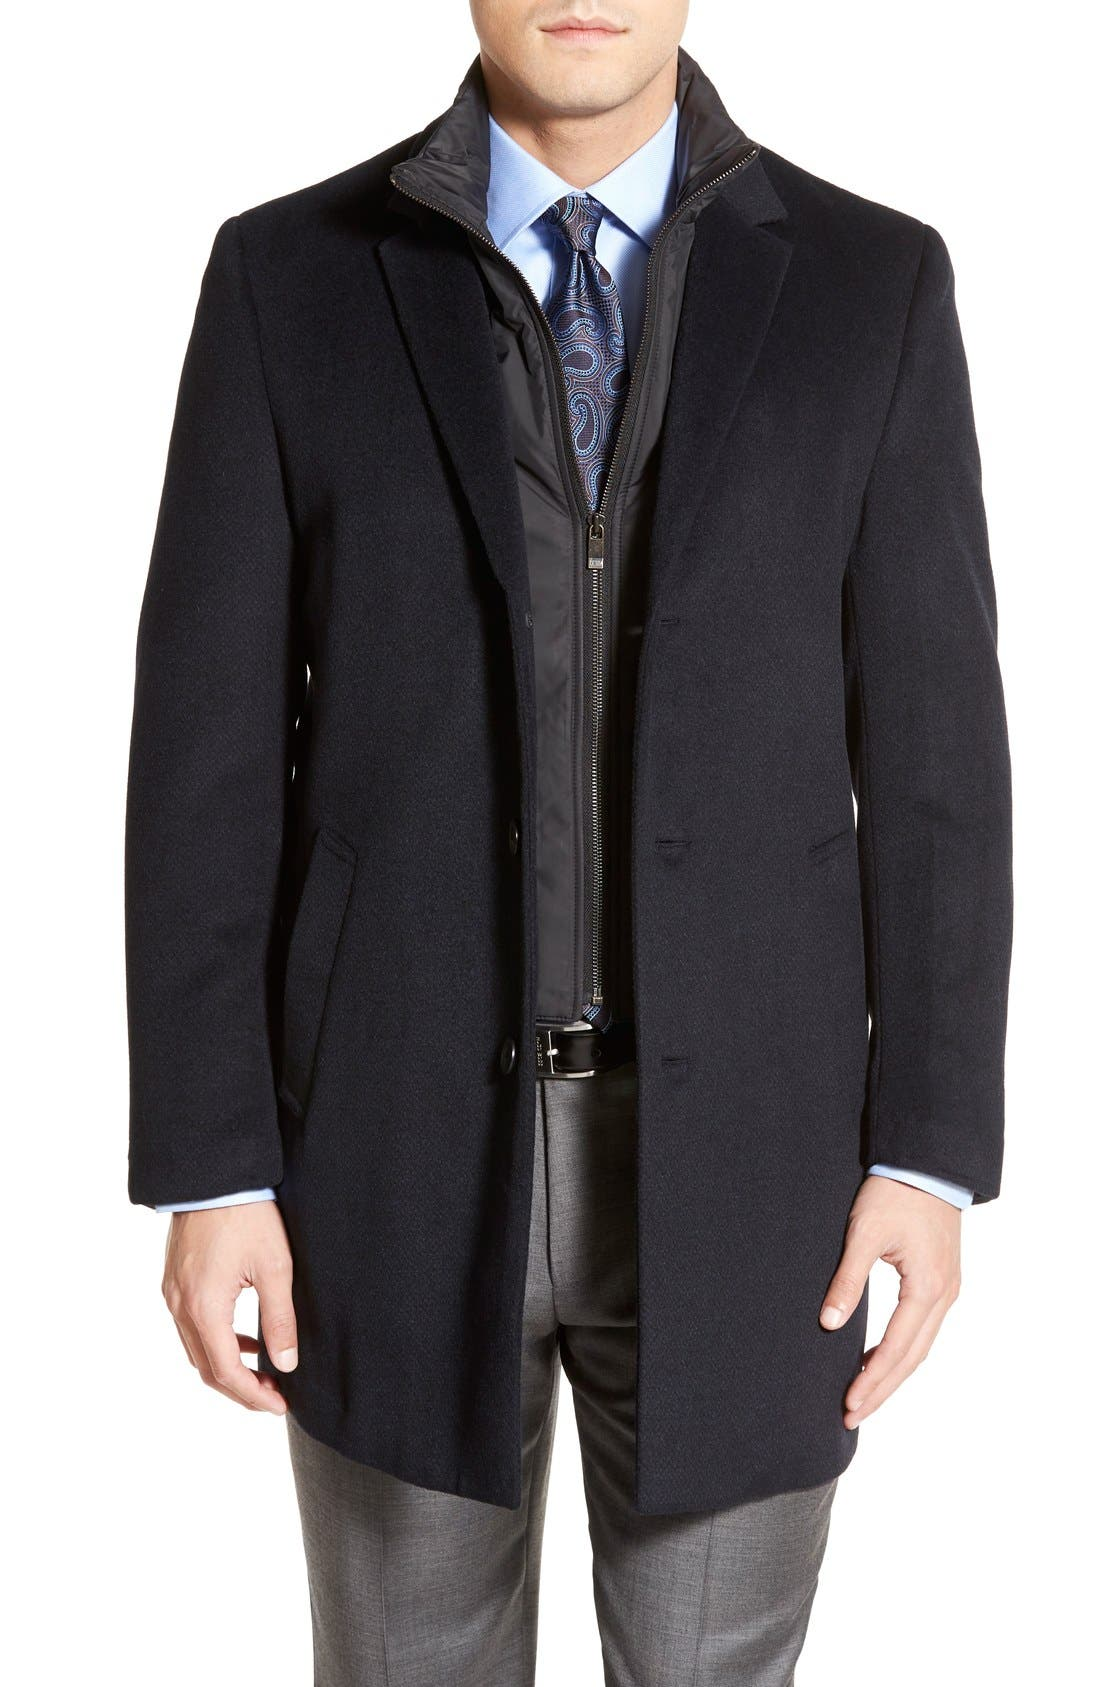 Alternate Image 1 Selected - Hart Schaffner Marx Kingman Modern Fit Wool Blend Coat with Removable Zipper Bib